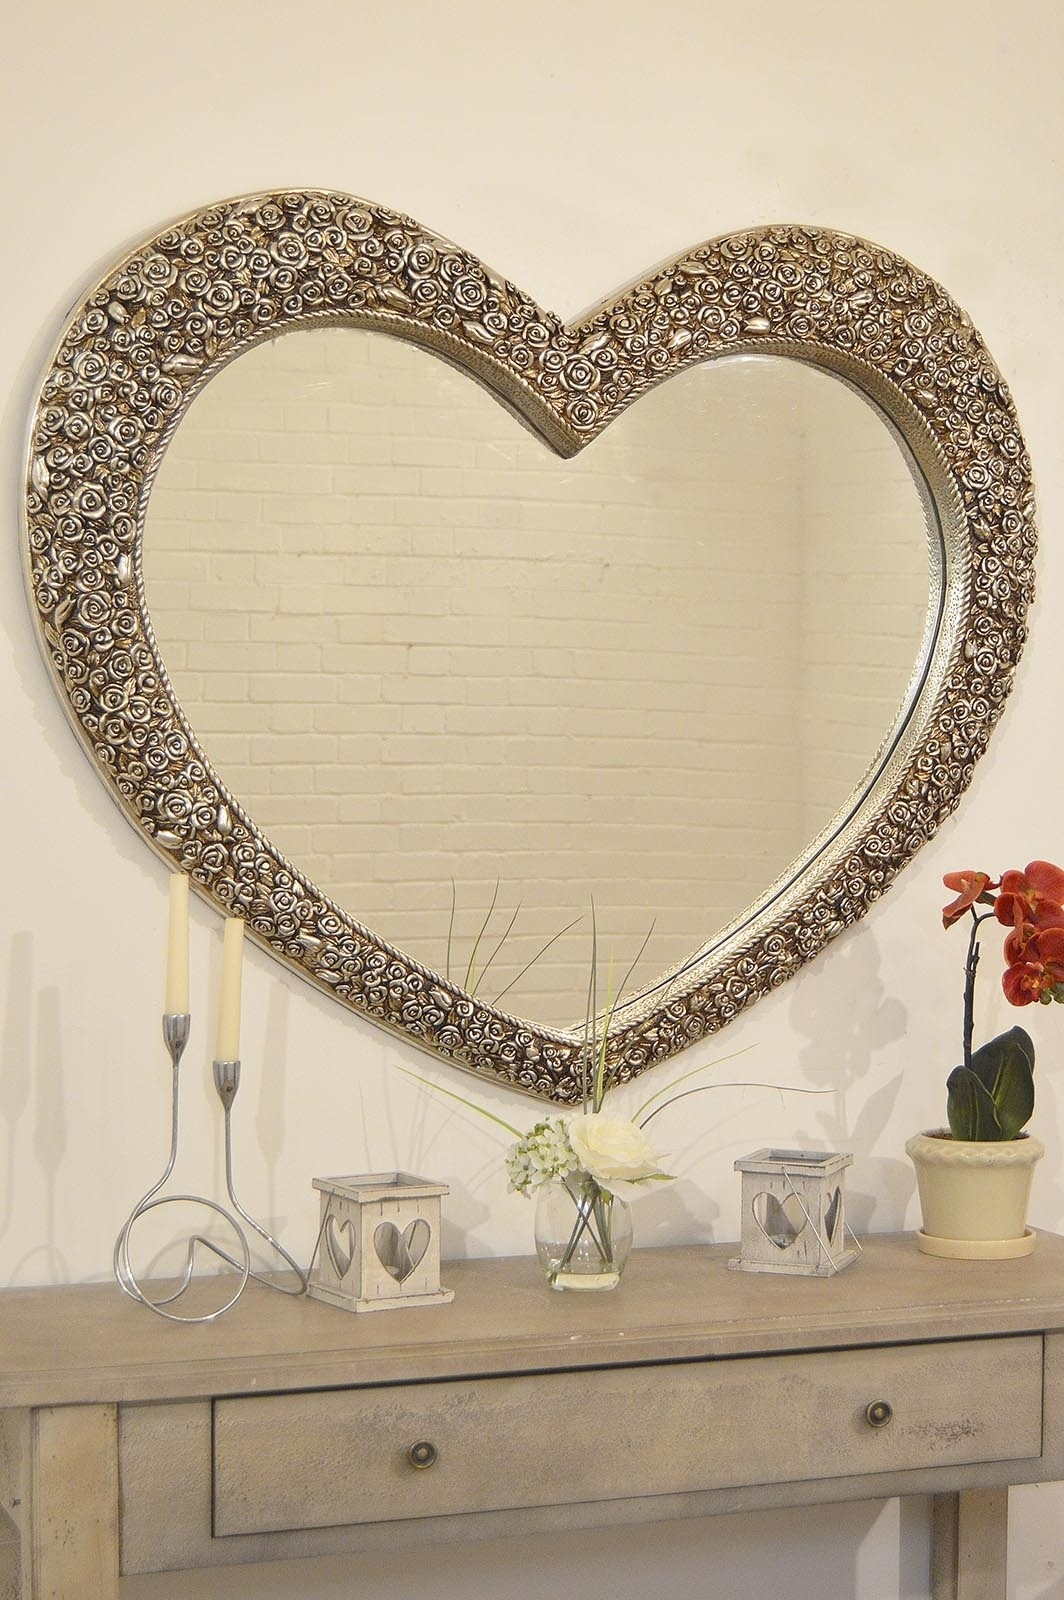 Wall Mirrors Images Full Length Wall Mirrors Decorative Wall Within Antique Wall Mirrors For Sale (Image 13 of 15)